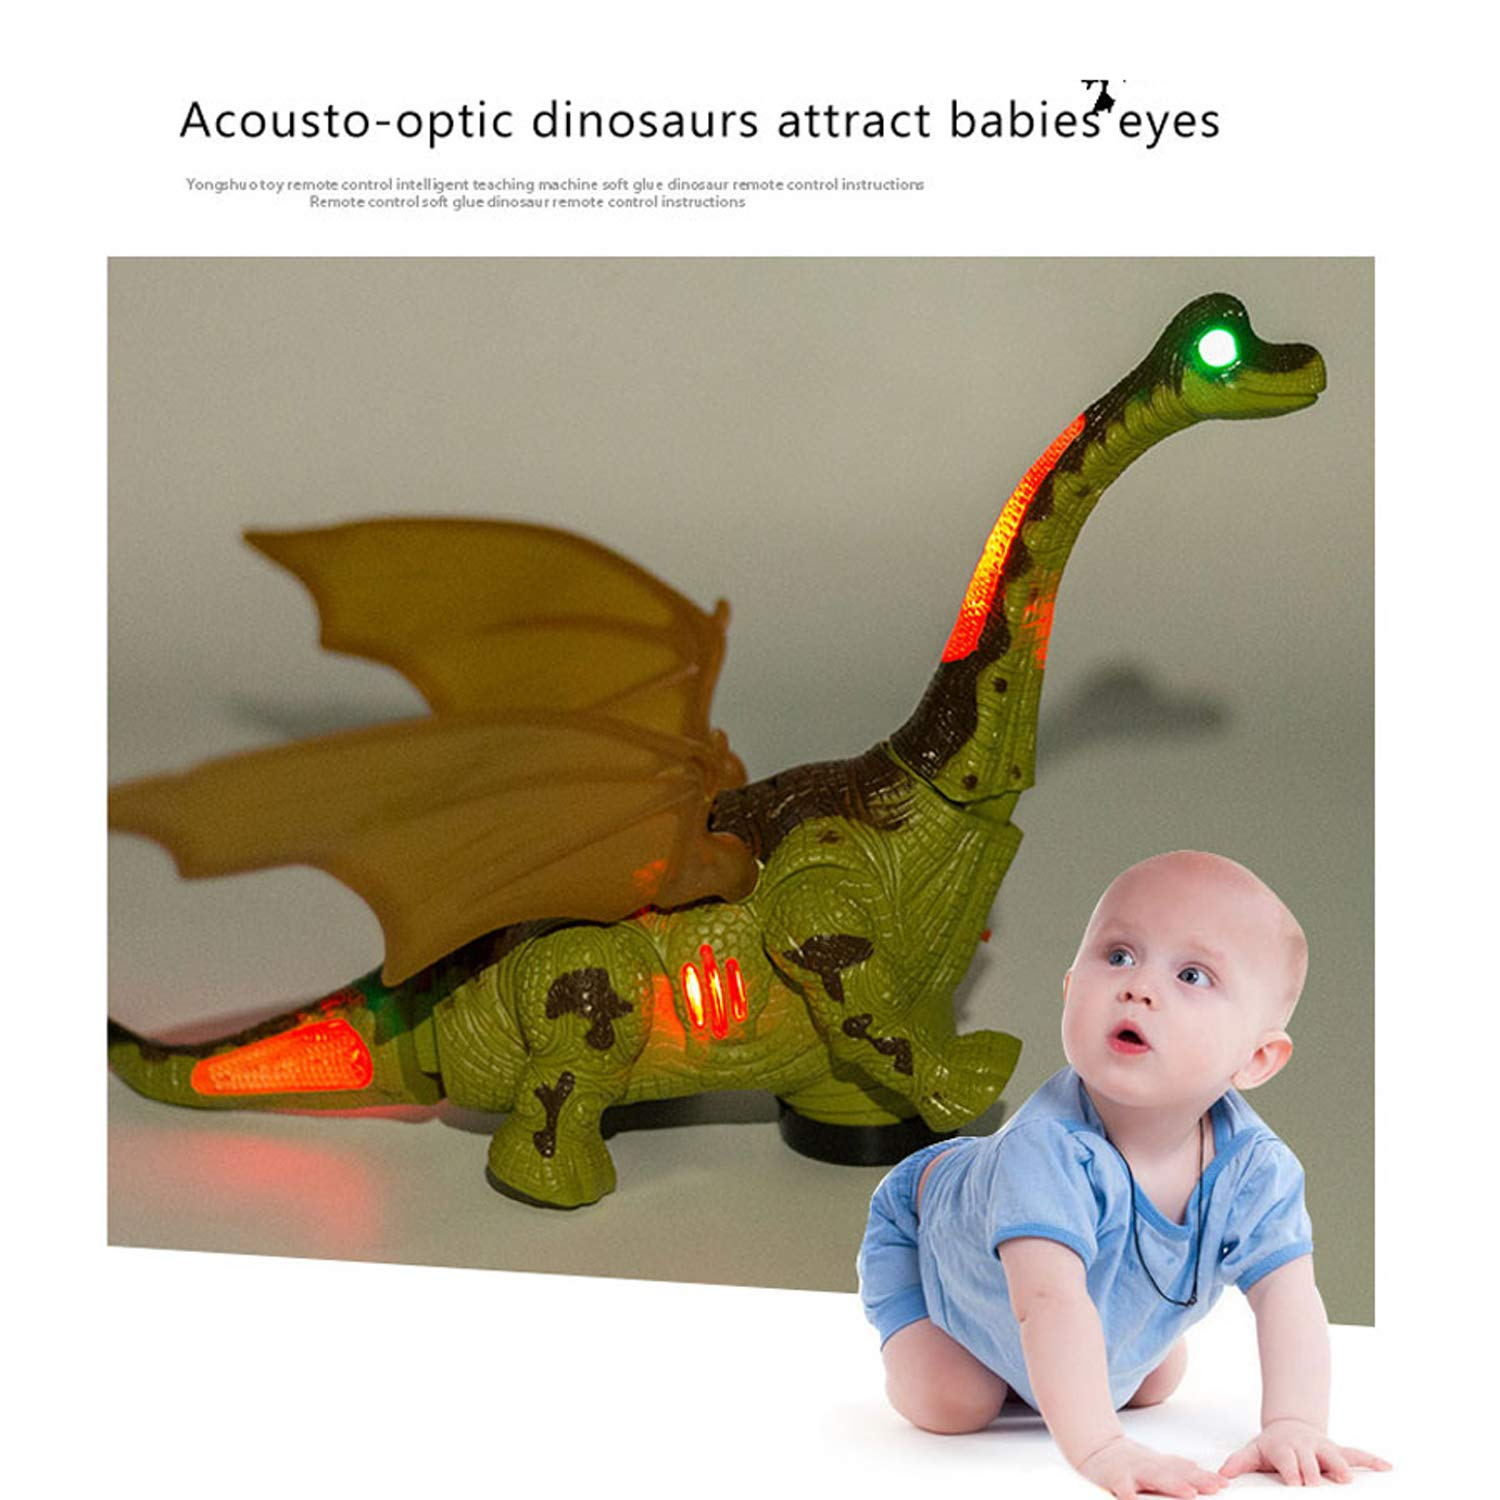 Mrocioa Electronic Dinosaur Toys Walking with Light up&Sound,Big Dino Action Figure 40cm Long for Toddler Boys,Shaking its Tail and Long Neck (Green) by Mrocioa (Image #5)